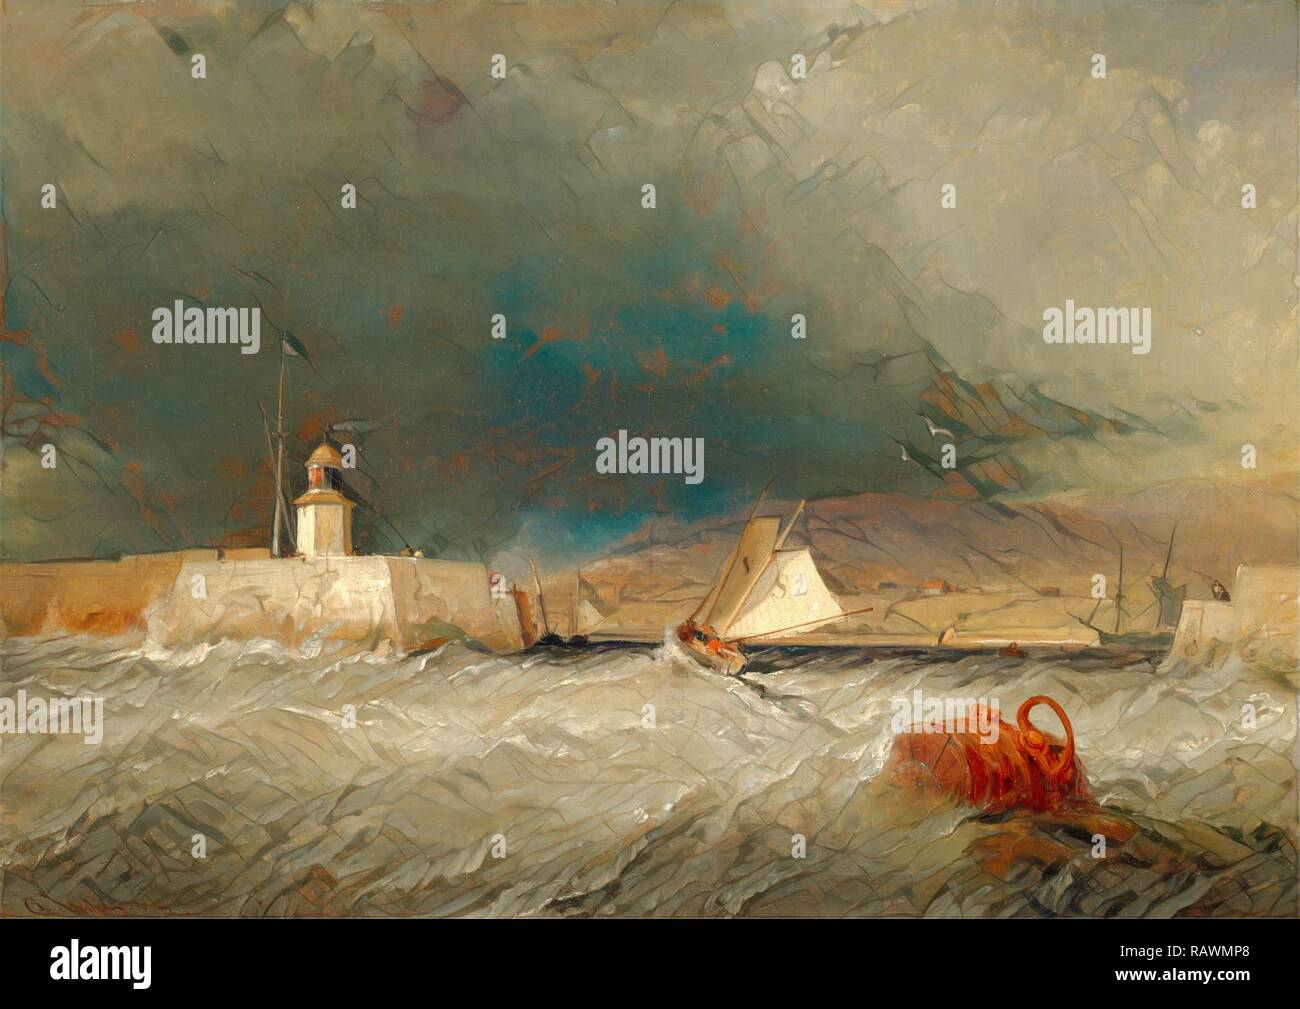 Port on a Stormy Day Signed and dated, lower left: 'G. Chambers 1835', George Chambers, 1803-1840, British reimagined - Stock Image